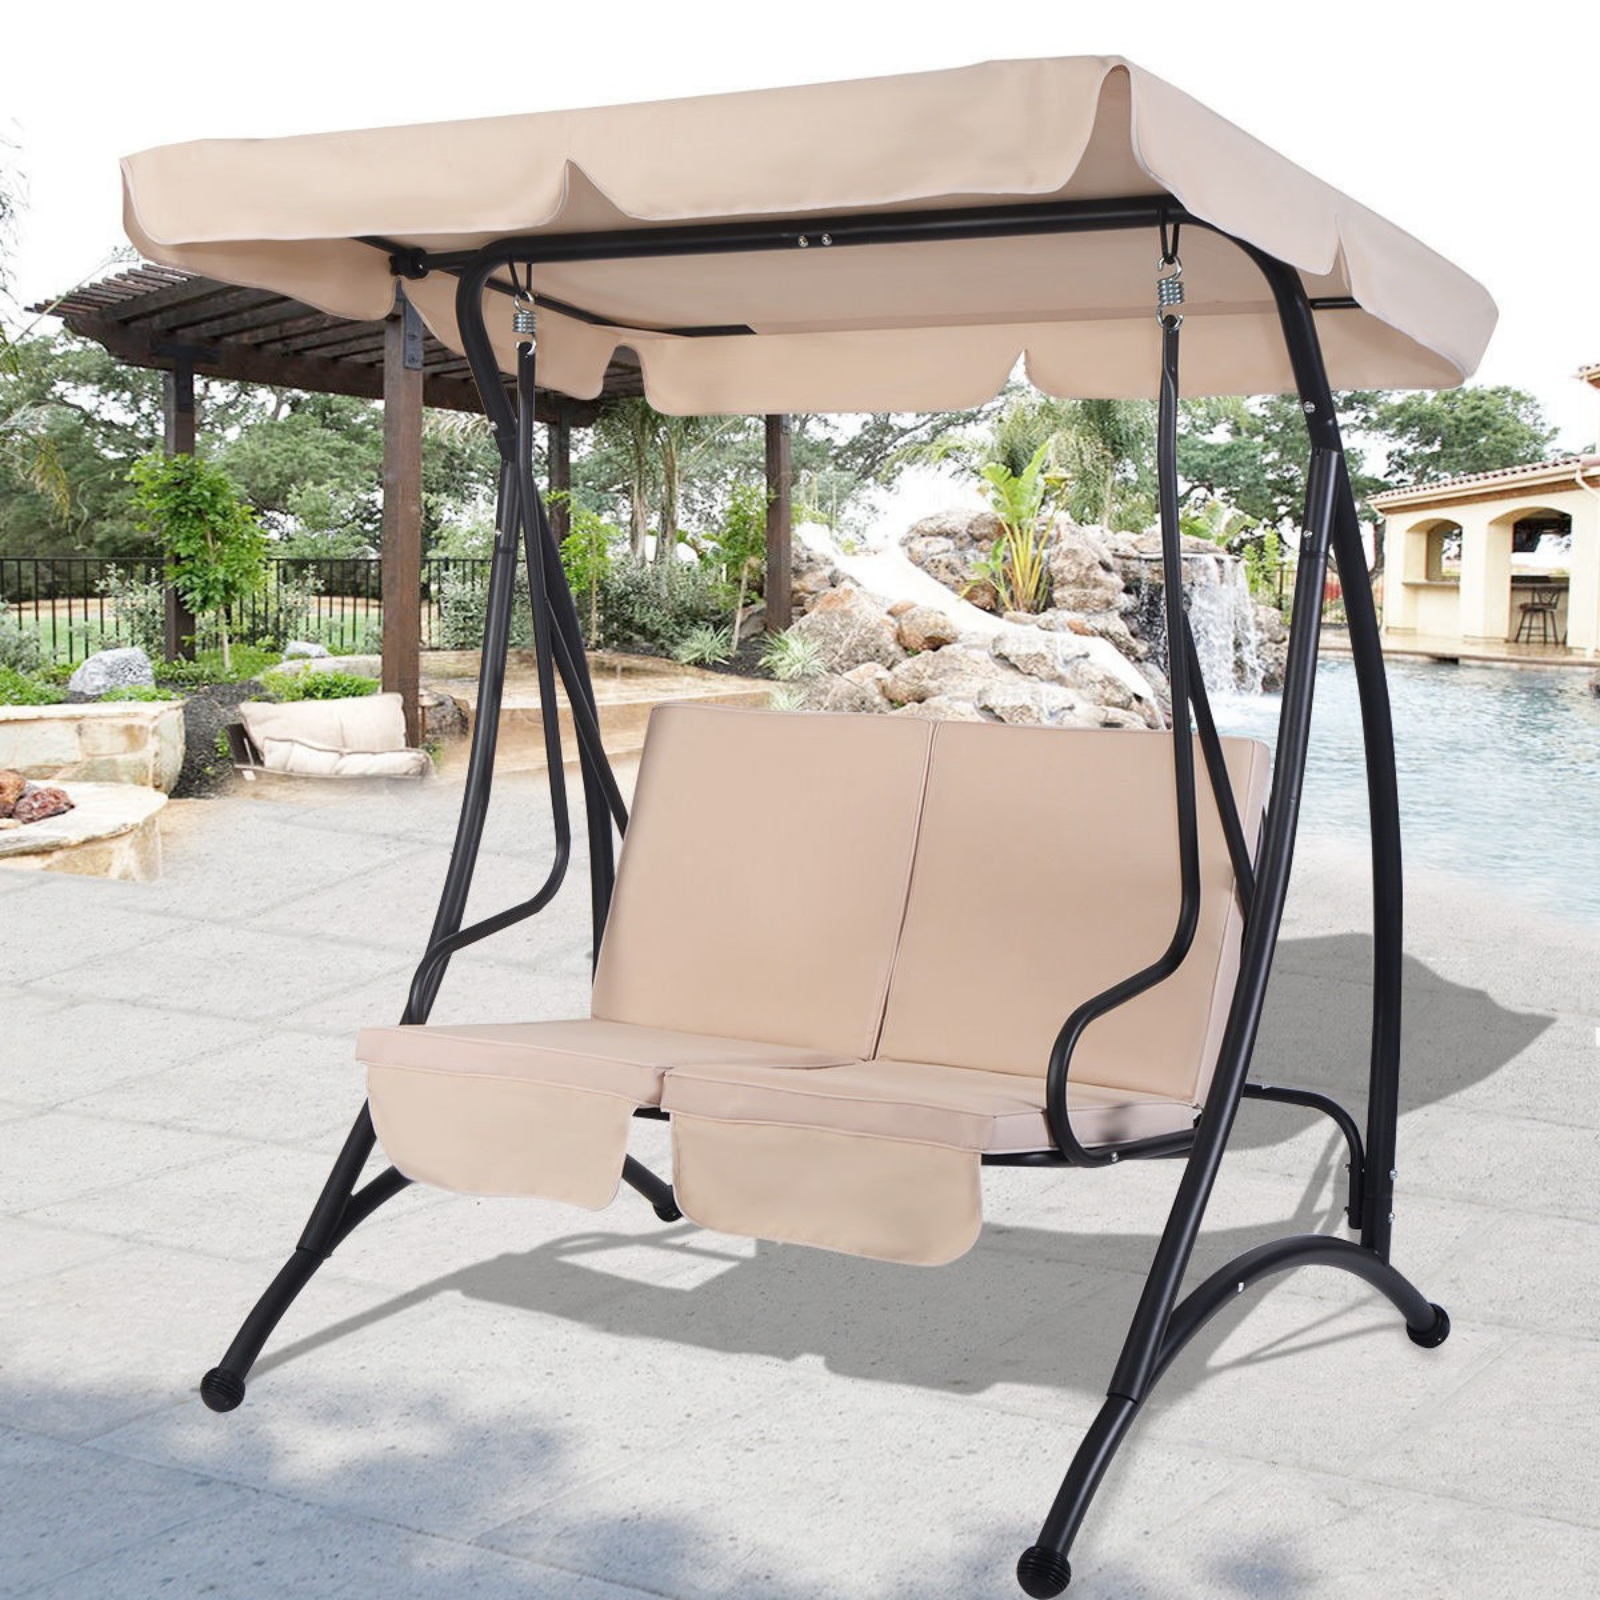 Outdoor Swing With Canopy 2 Person Patio Porch Steel Swing Double Hanging Seat For Most Popular 3 Seat Pergola Swings (Gallery 21 of 25)